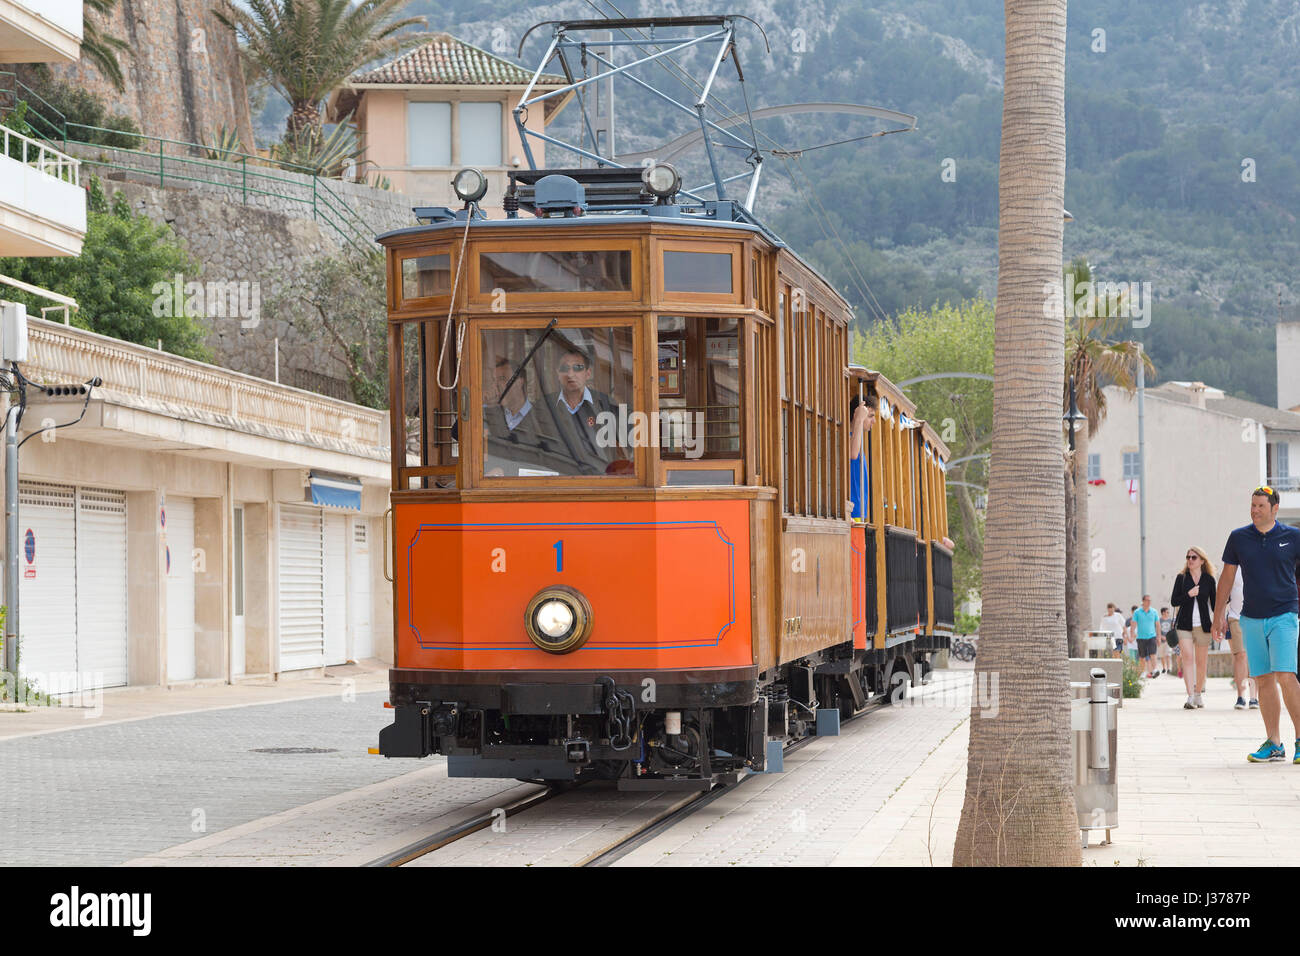 tramway in Port de Sóller, Mallorca, Spain - Stock Image